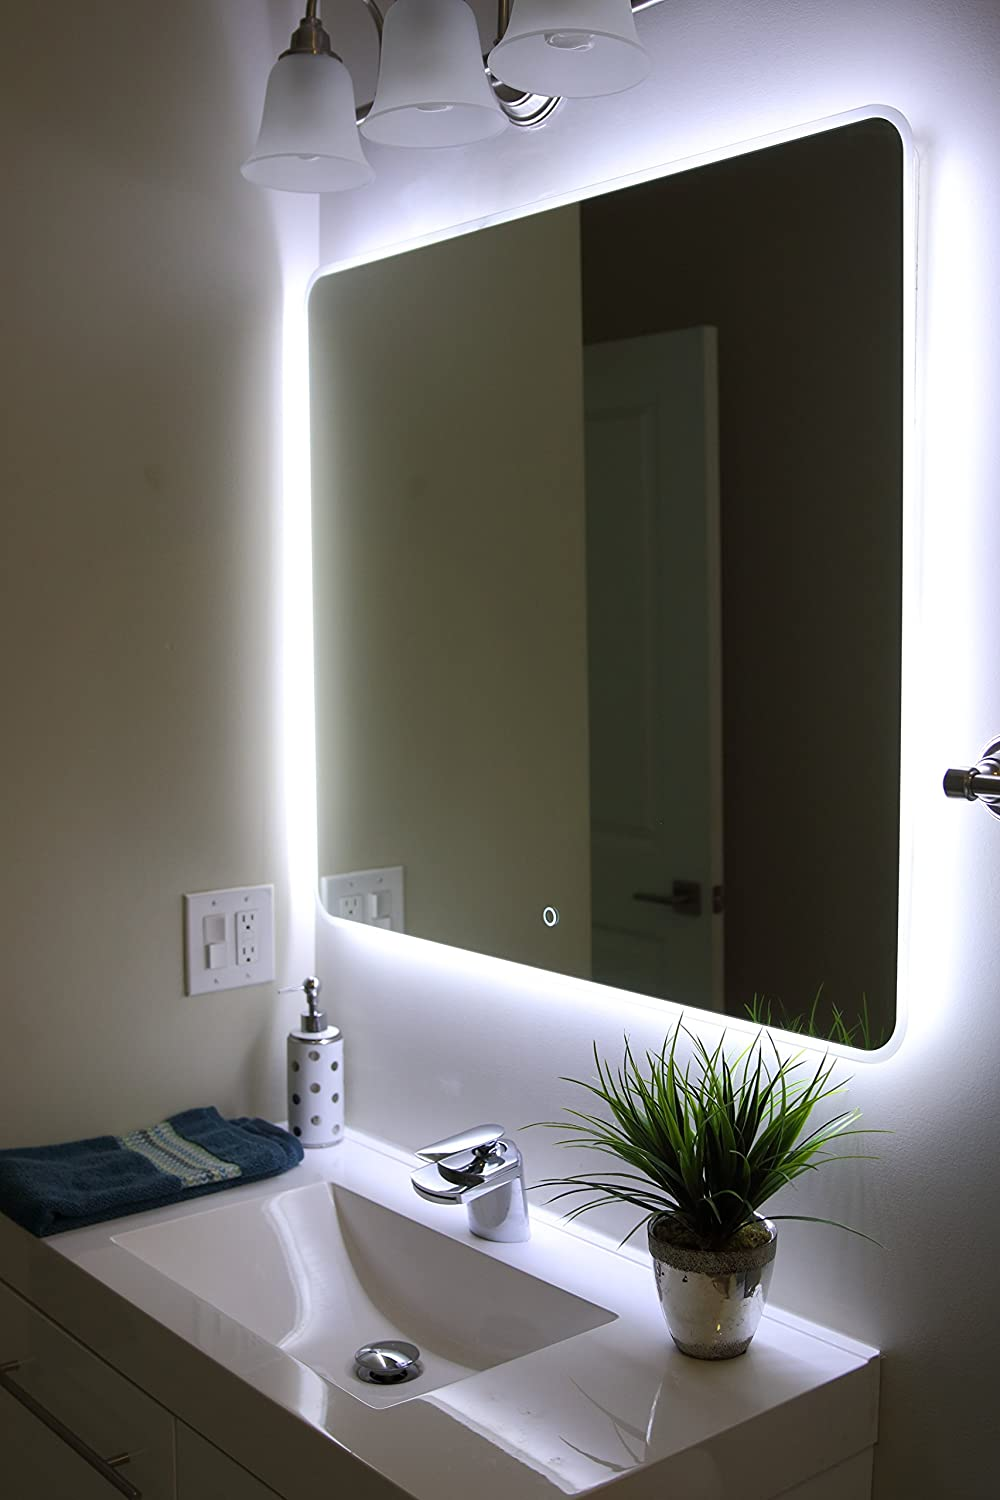 Bathroom Mirrors With Led Lights. Amazon Com Windbay Backlit Led Light Bathroom Vanity Sink Mirror Illuminated Mirror 36 Home Kitchen